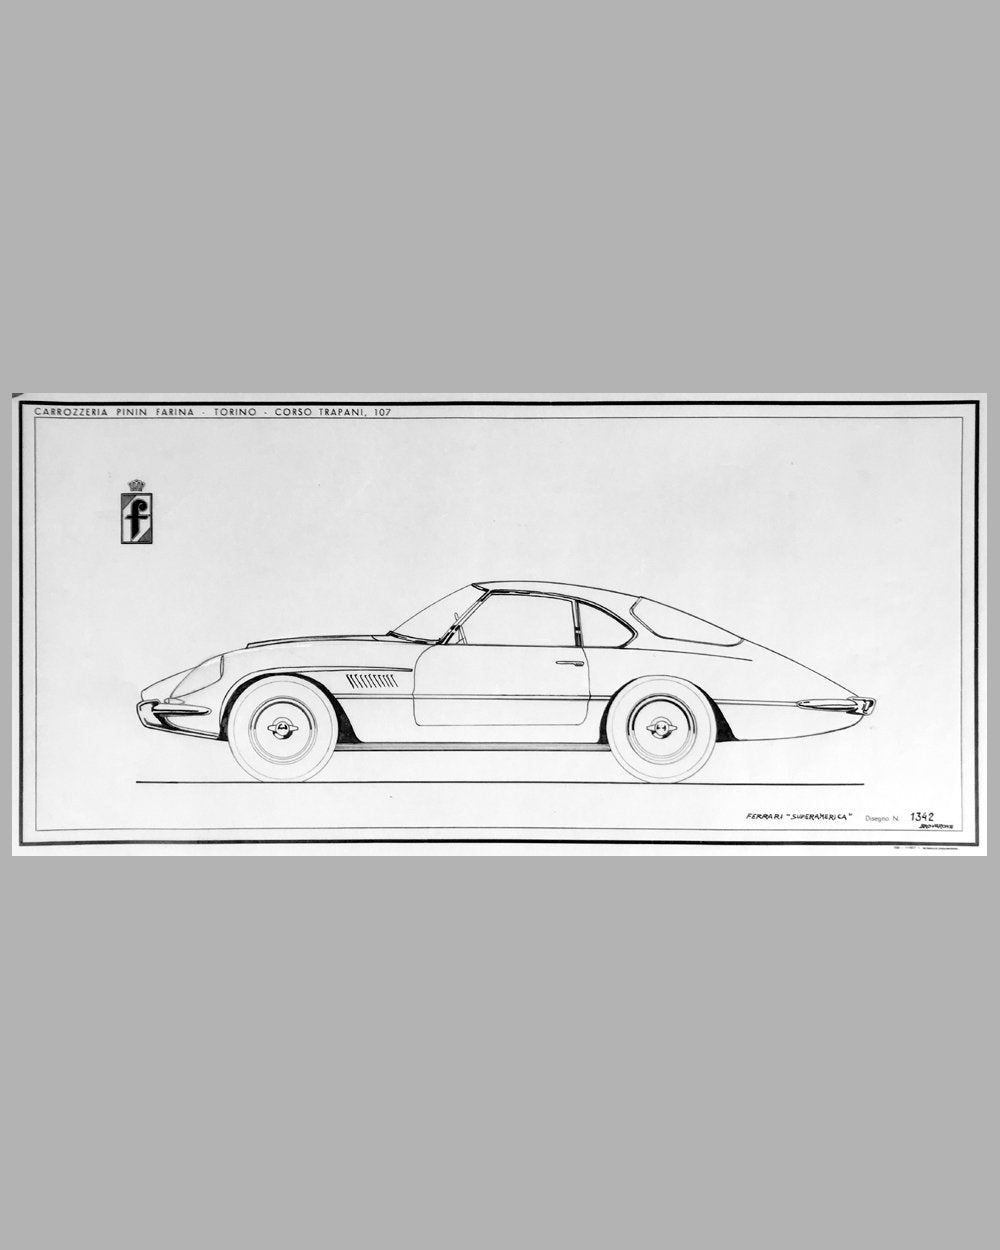 Ferrari Superamerica original China ink drawing by the Pininfarina Studio